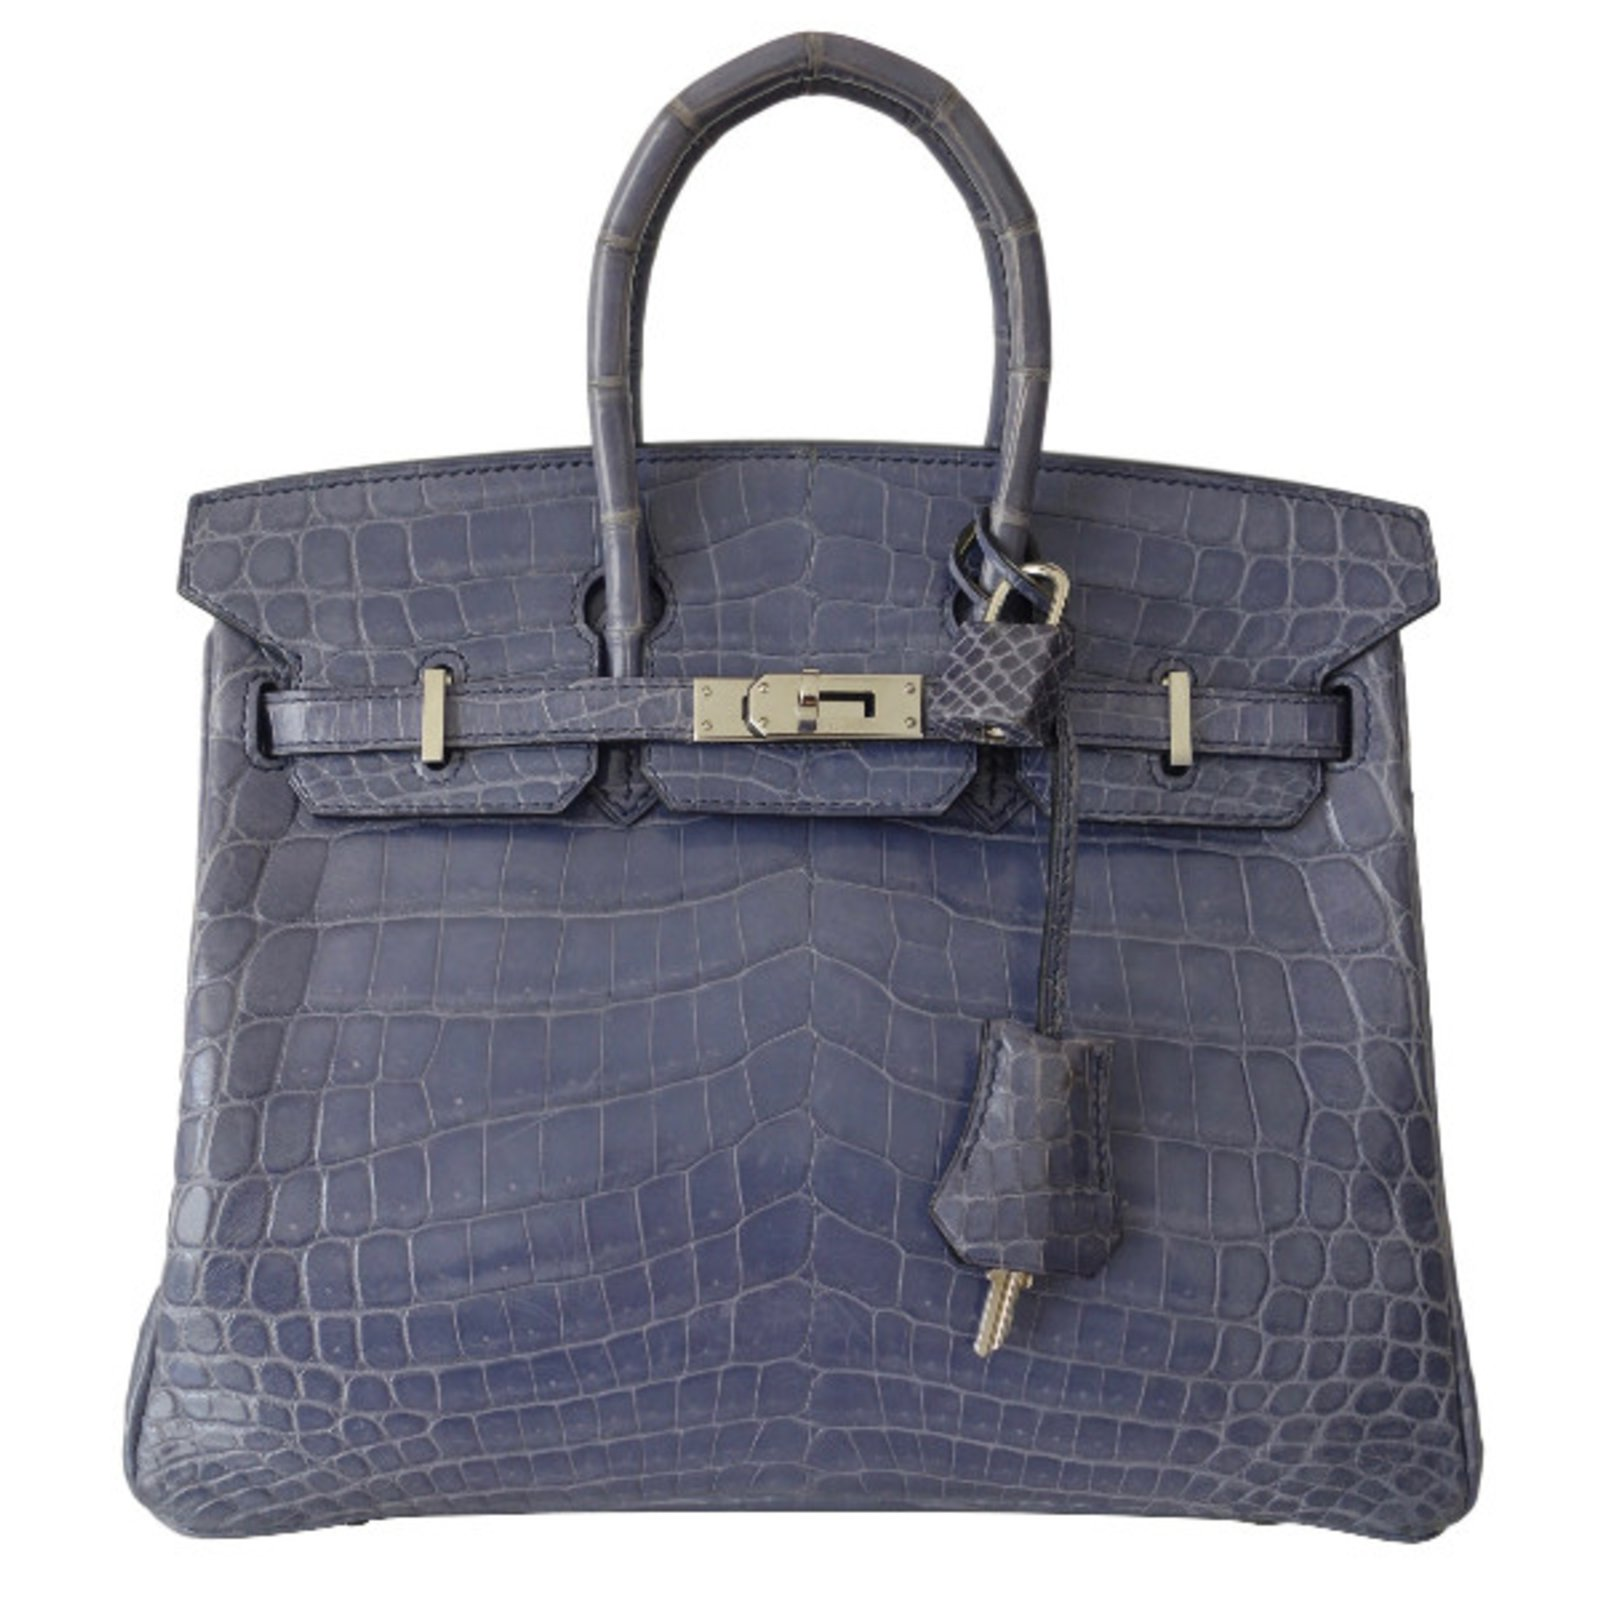 Hermès BIRKIN CROCODILE 25 Handbags Exotic leather Blue 55e6b84b3f